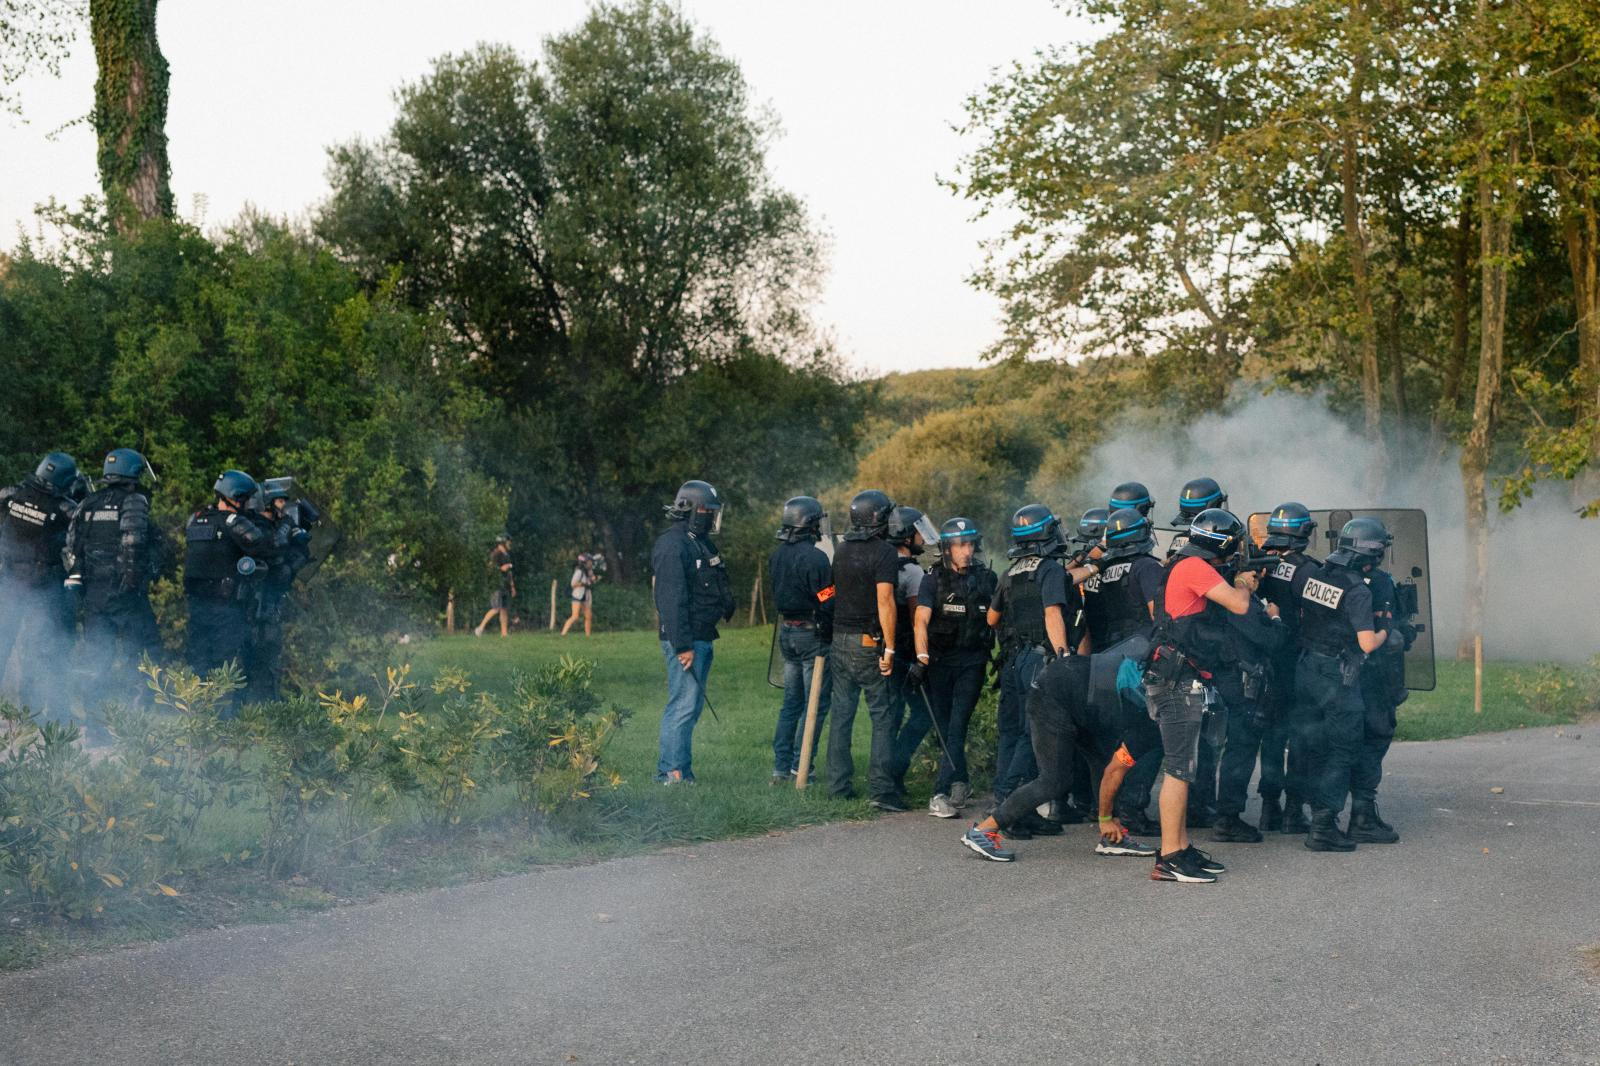 2019-08-23 - Police forces push into protest camp near Urrugne.